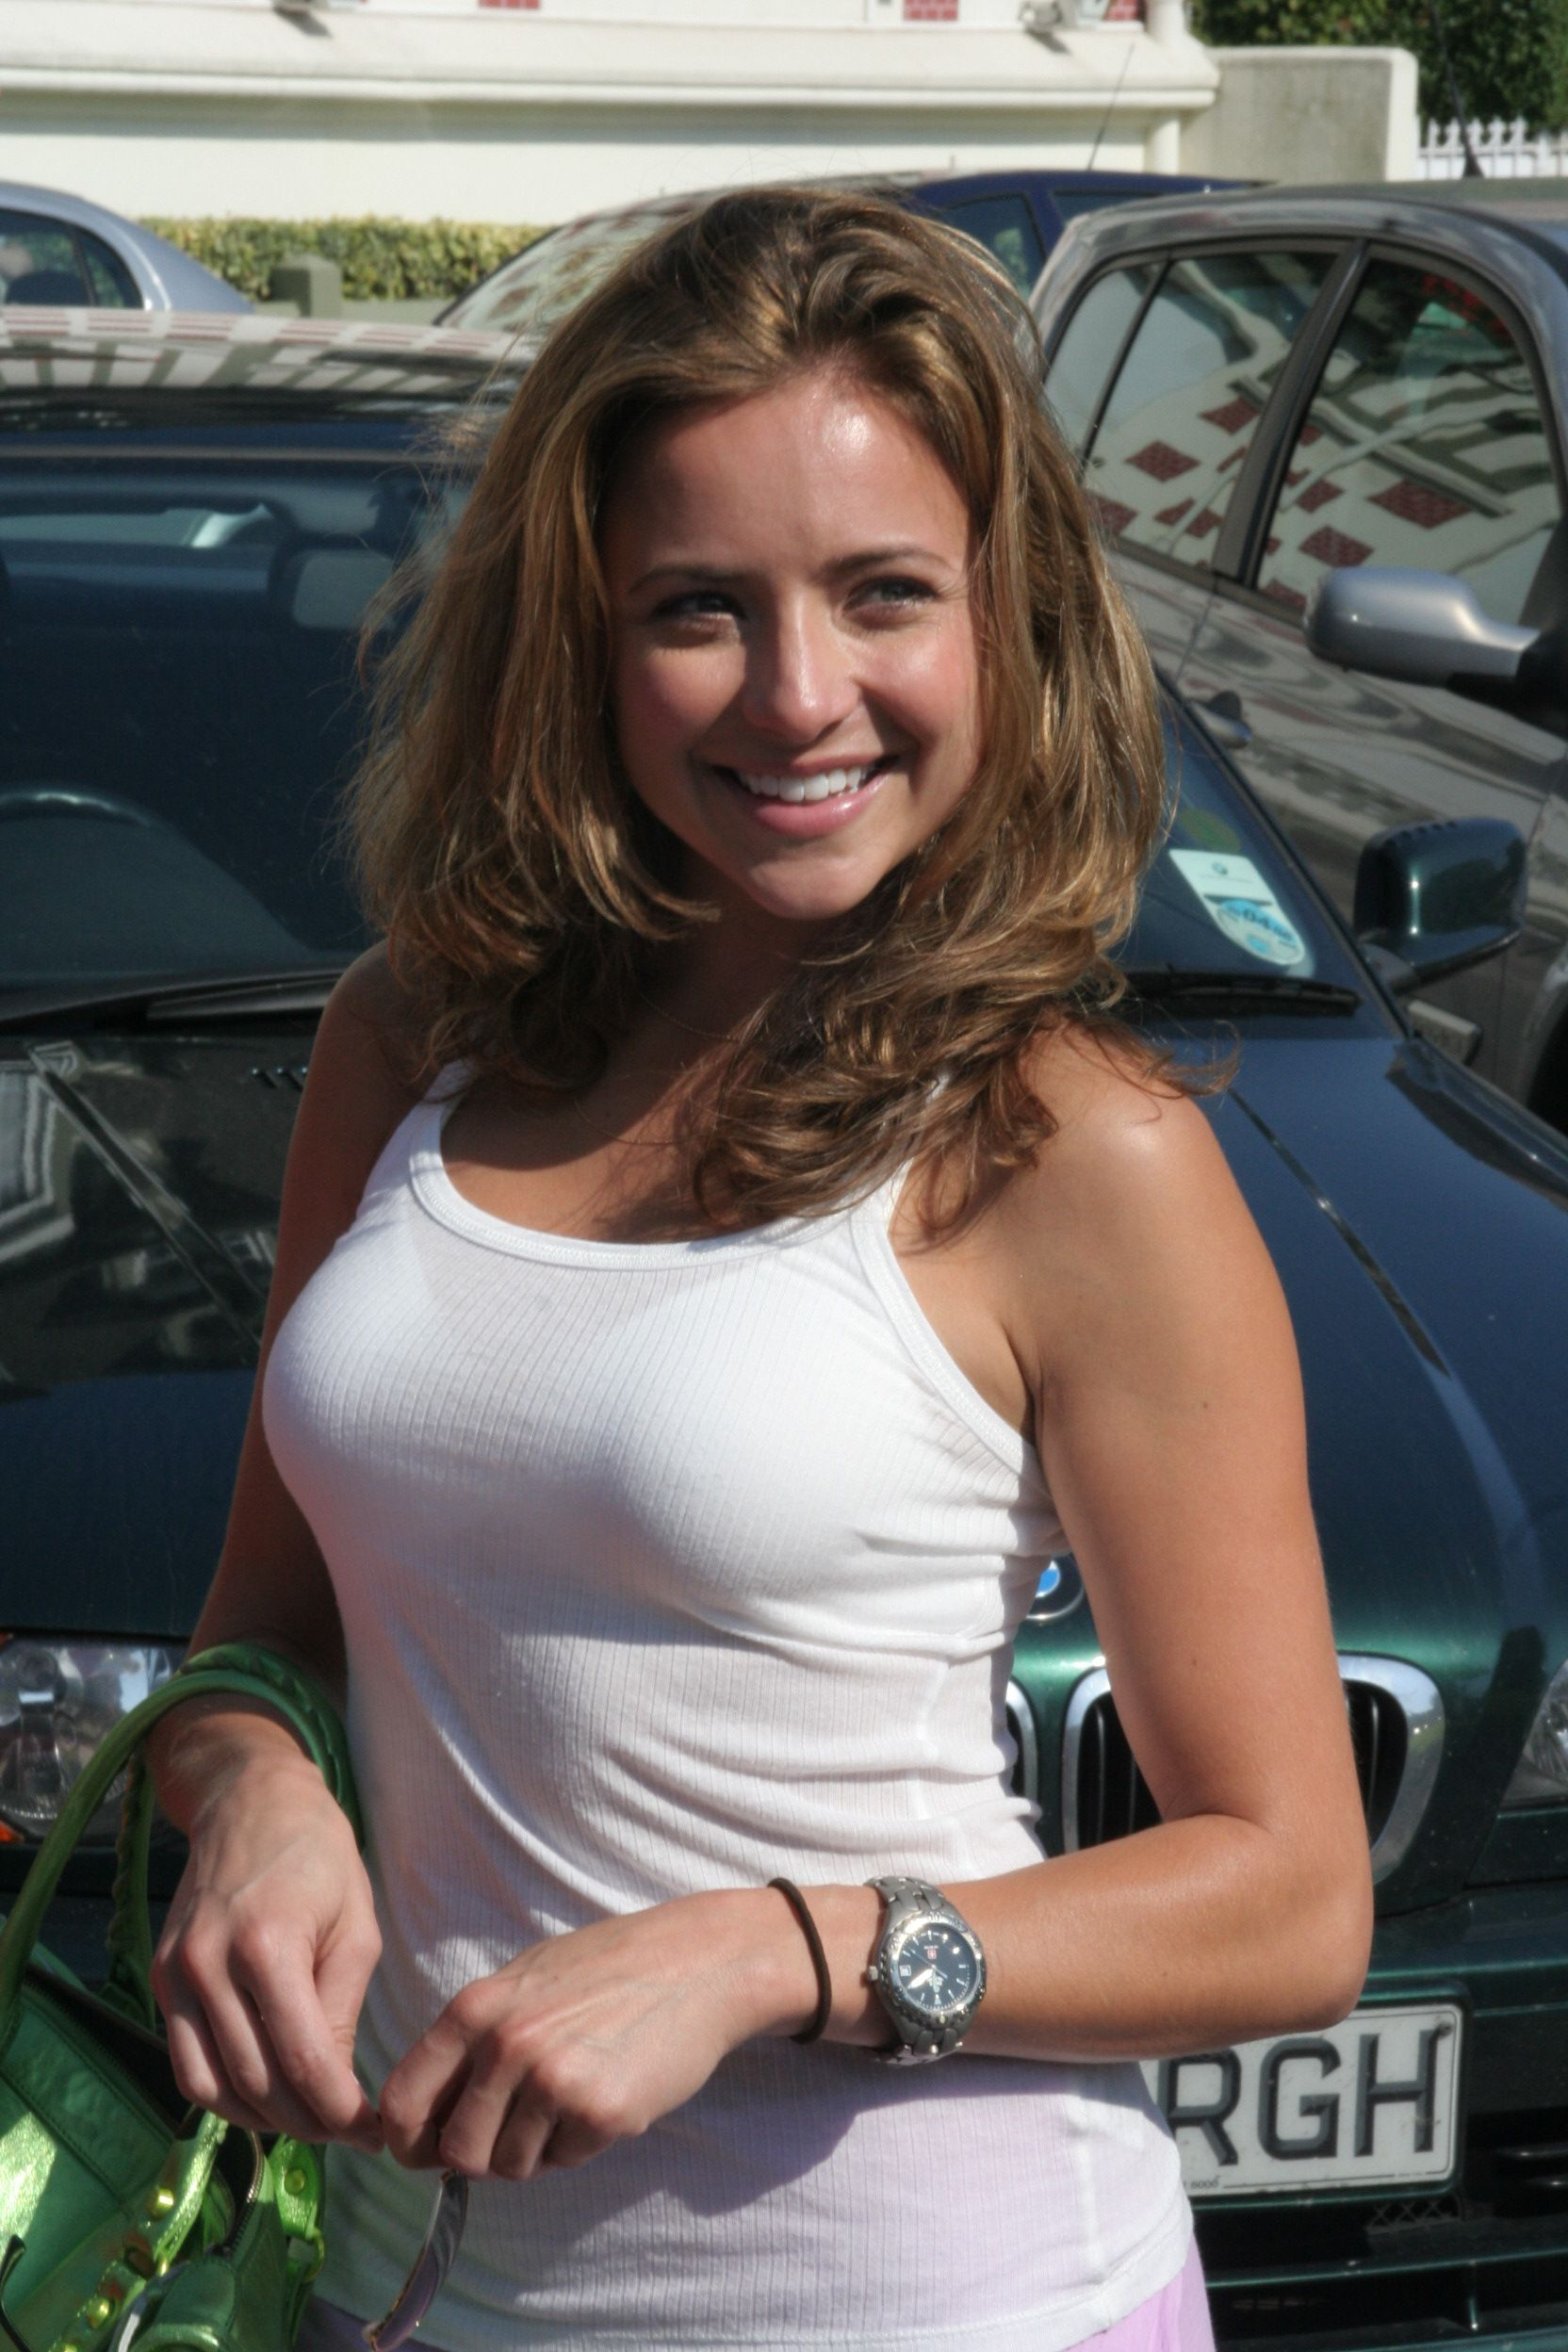 braless Pictures Christine Lakin naked photo 2017